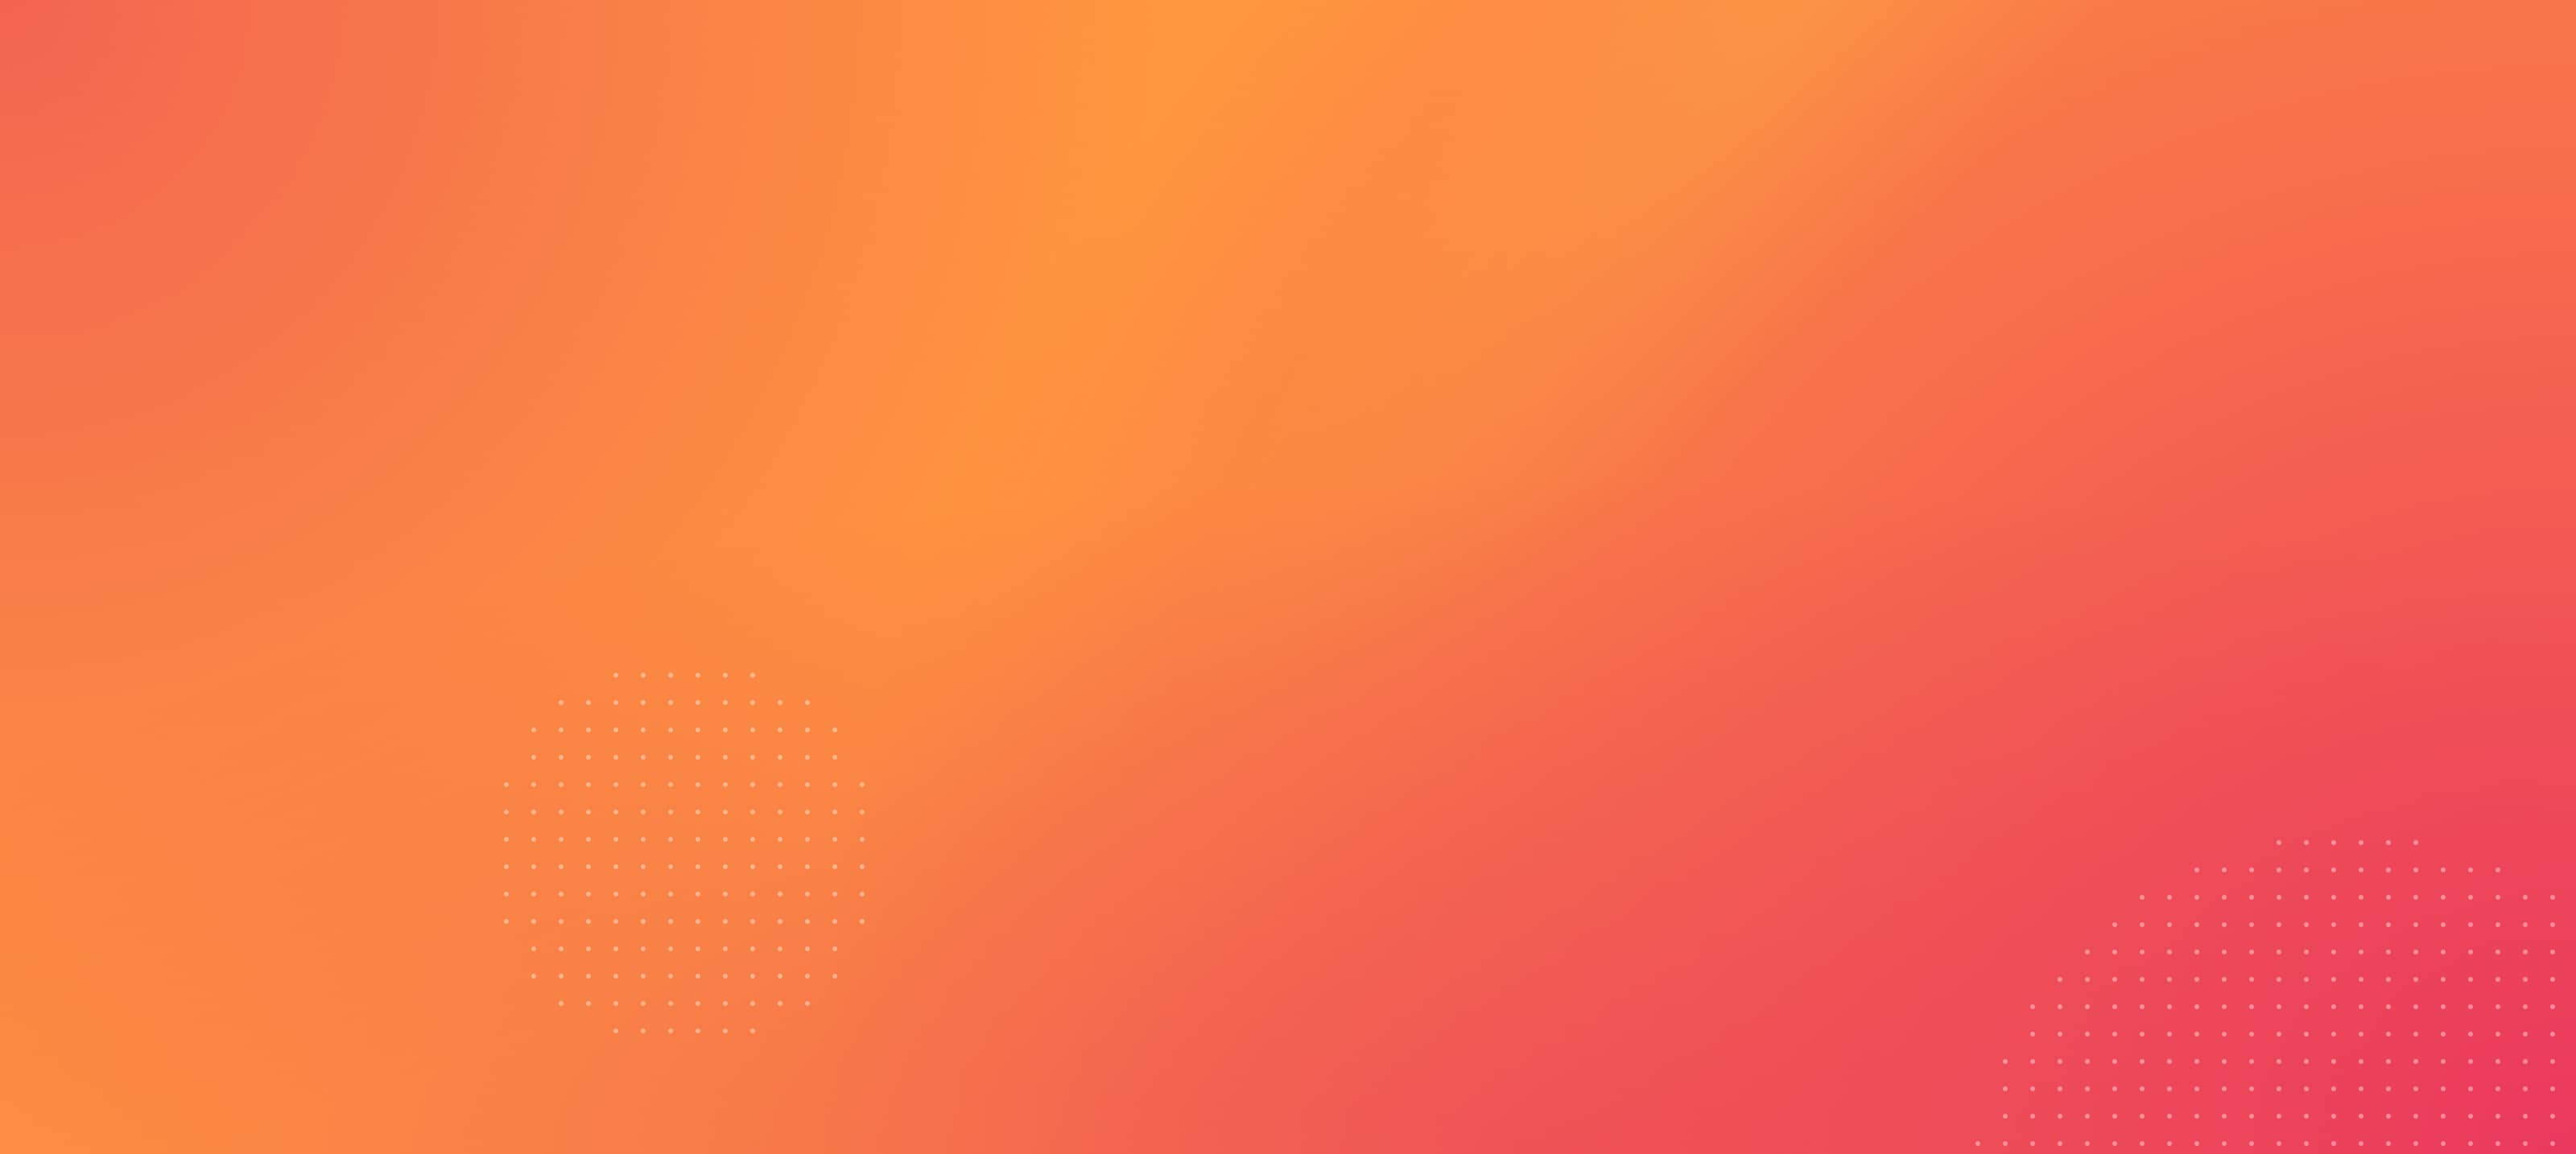 bg-gradient-orange-post